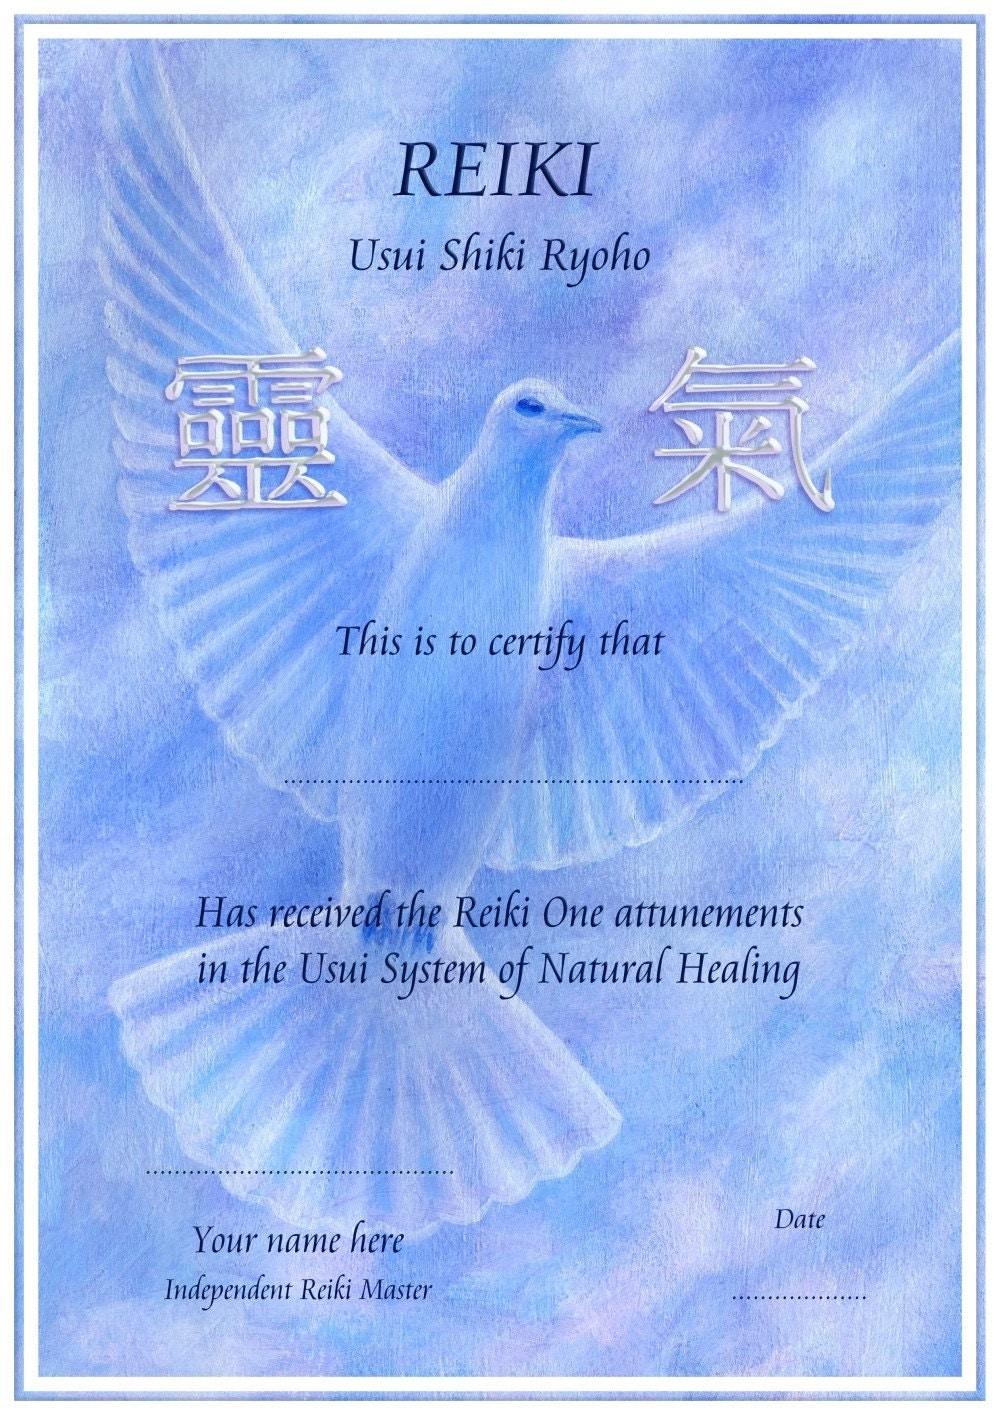 pin reiki certificate printable - photo #27